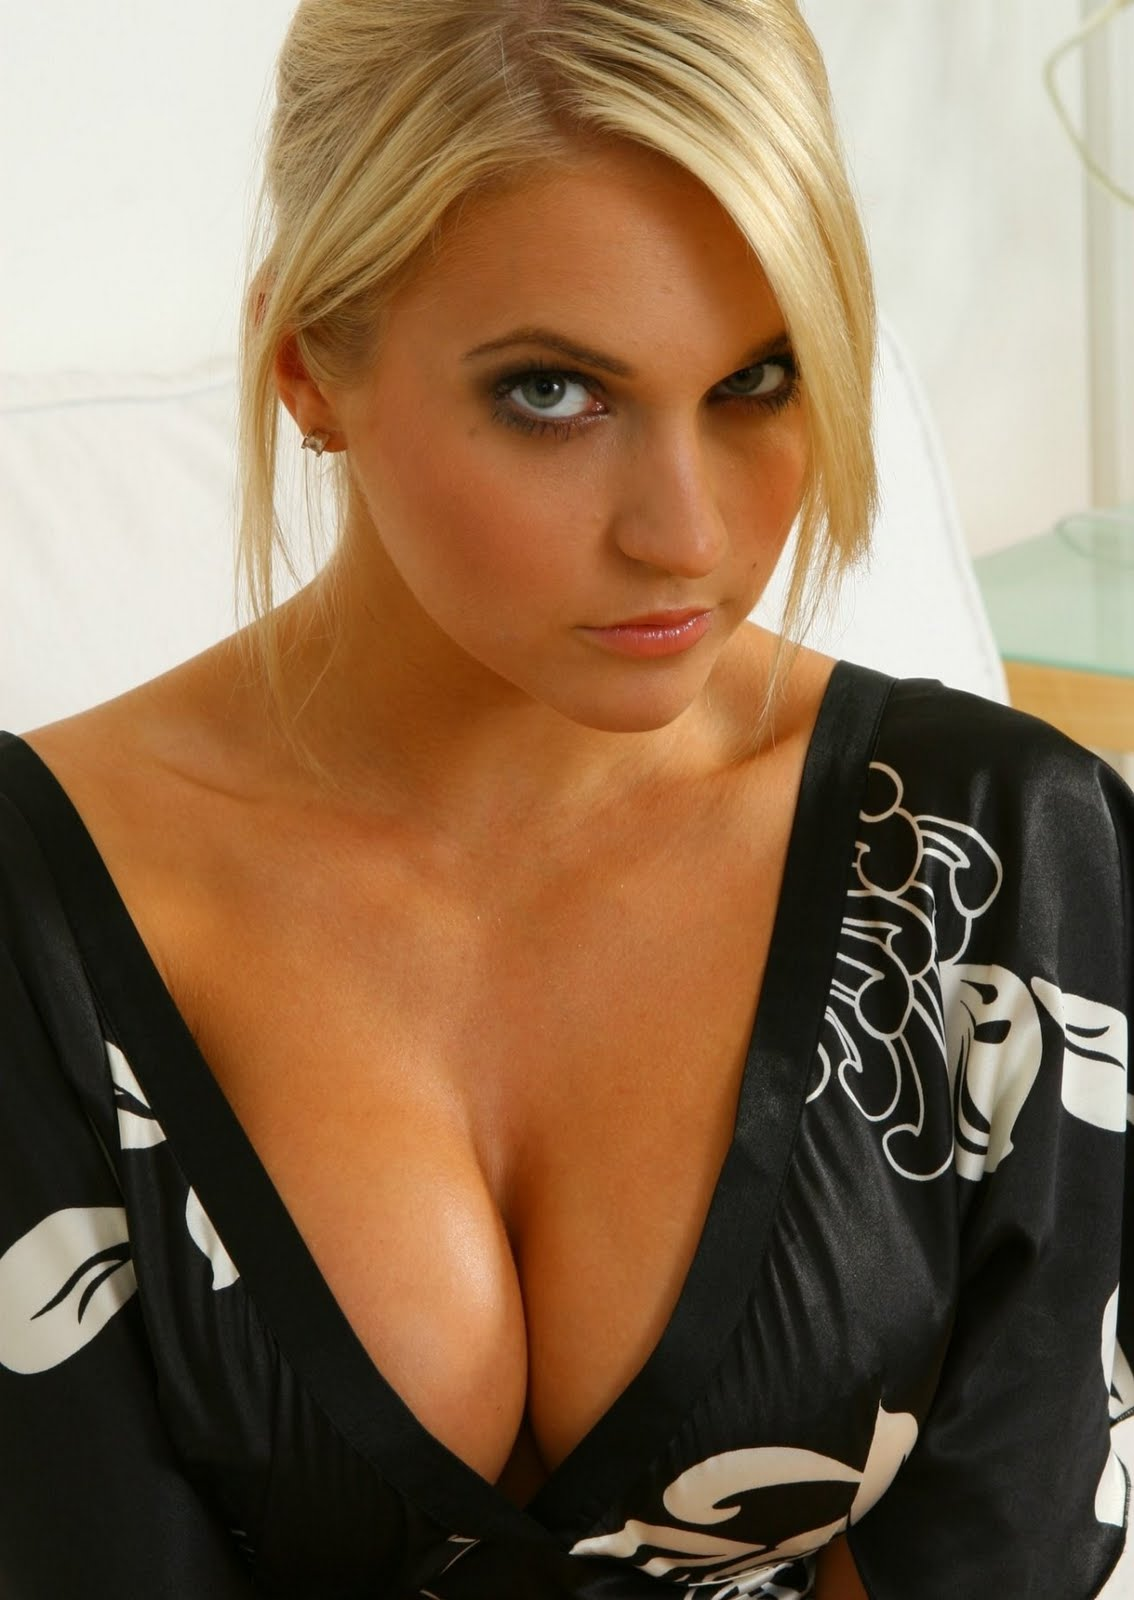 Actress Bra Size.com - The #1 Celebrity Measurements Website!